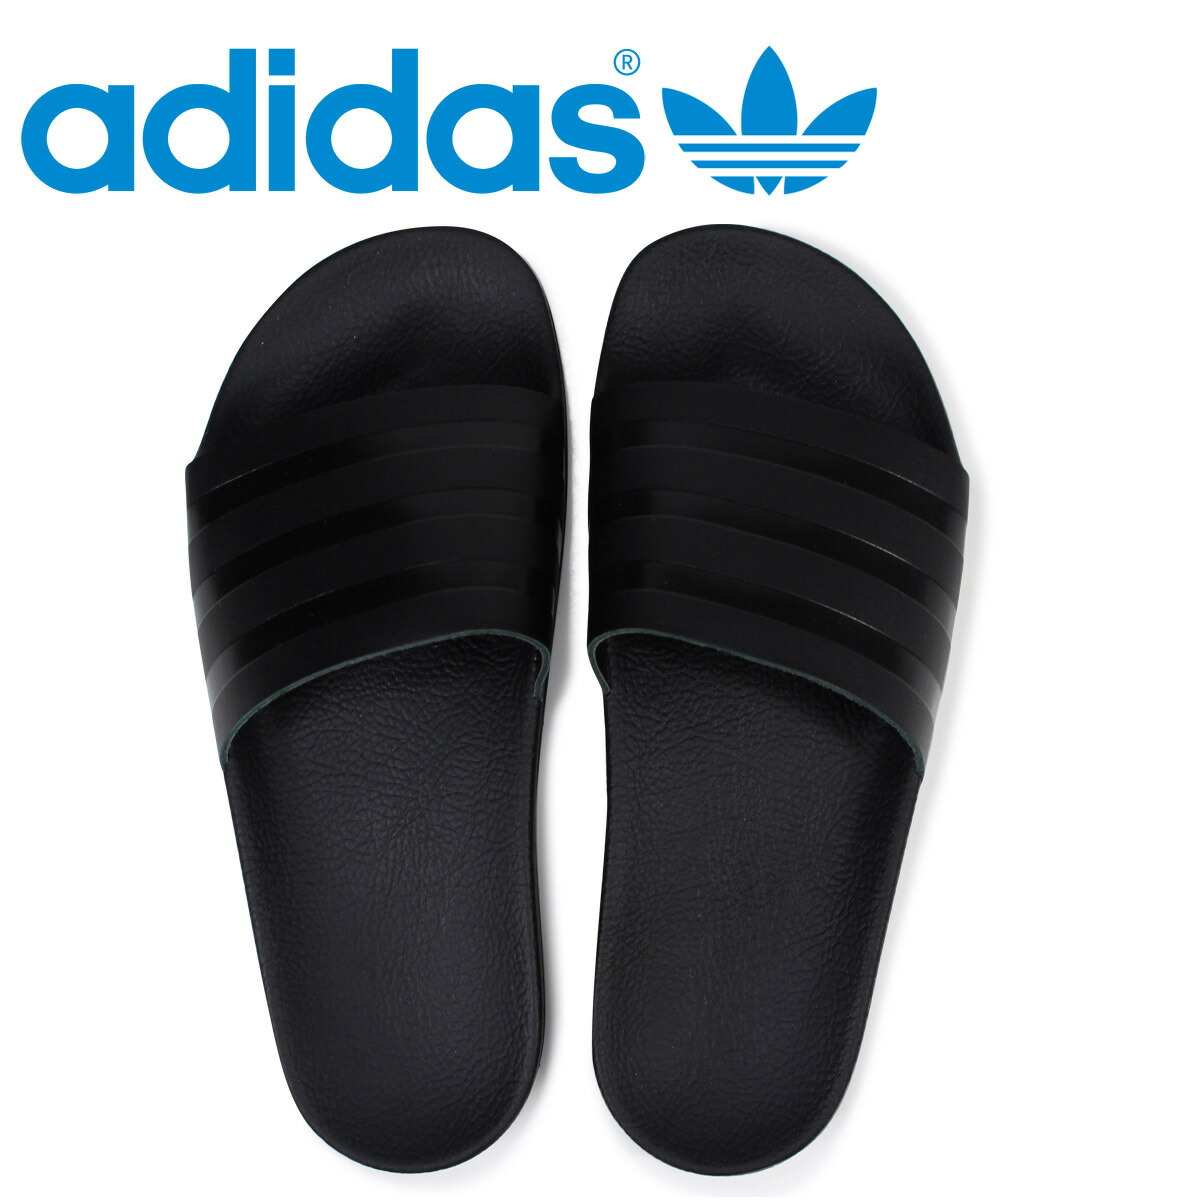 efe3f784706452 アディダスアディレッタ adidas Originals sandals shower sandals ADILETTE SLIDES men  CQ3094 black originals  load planned Shinnyu load in reservation product ...